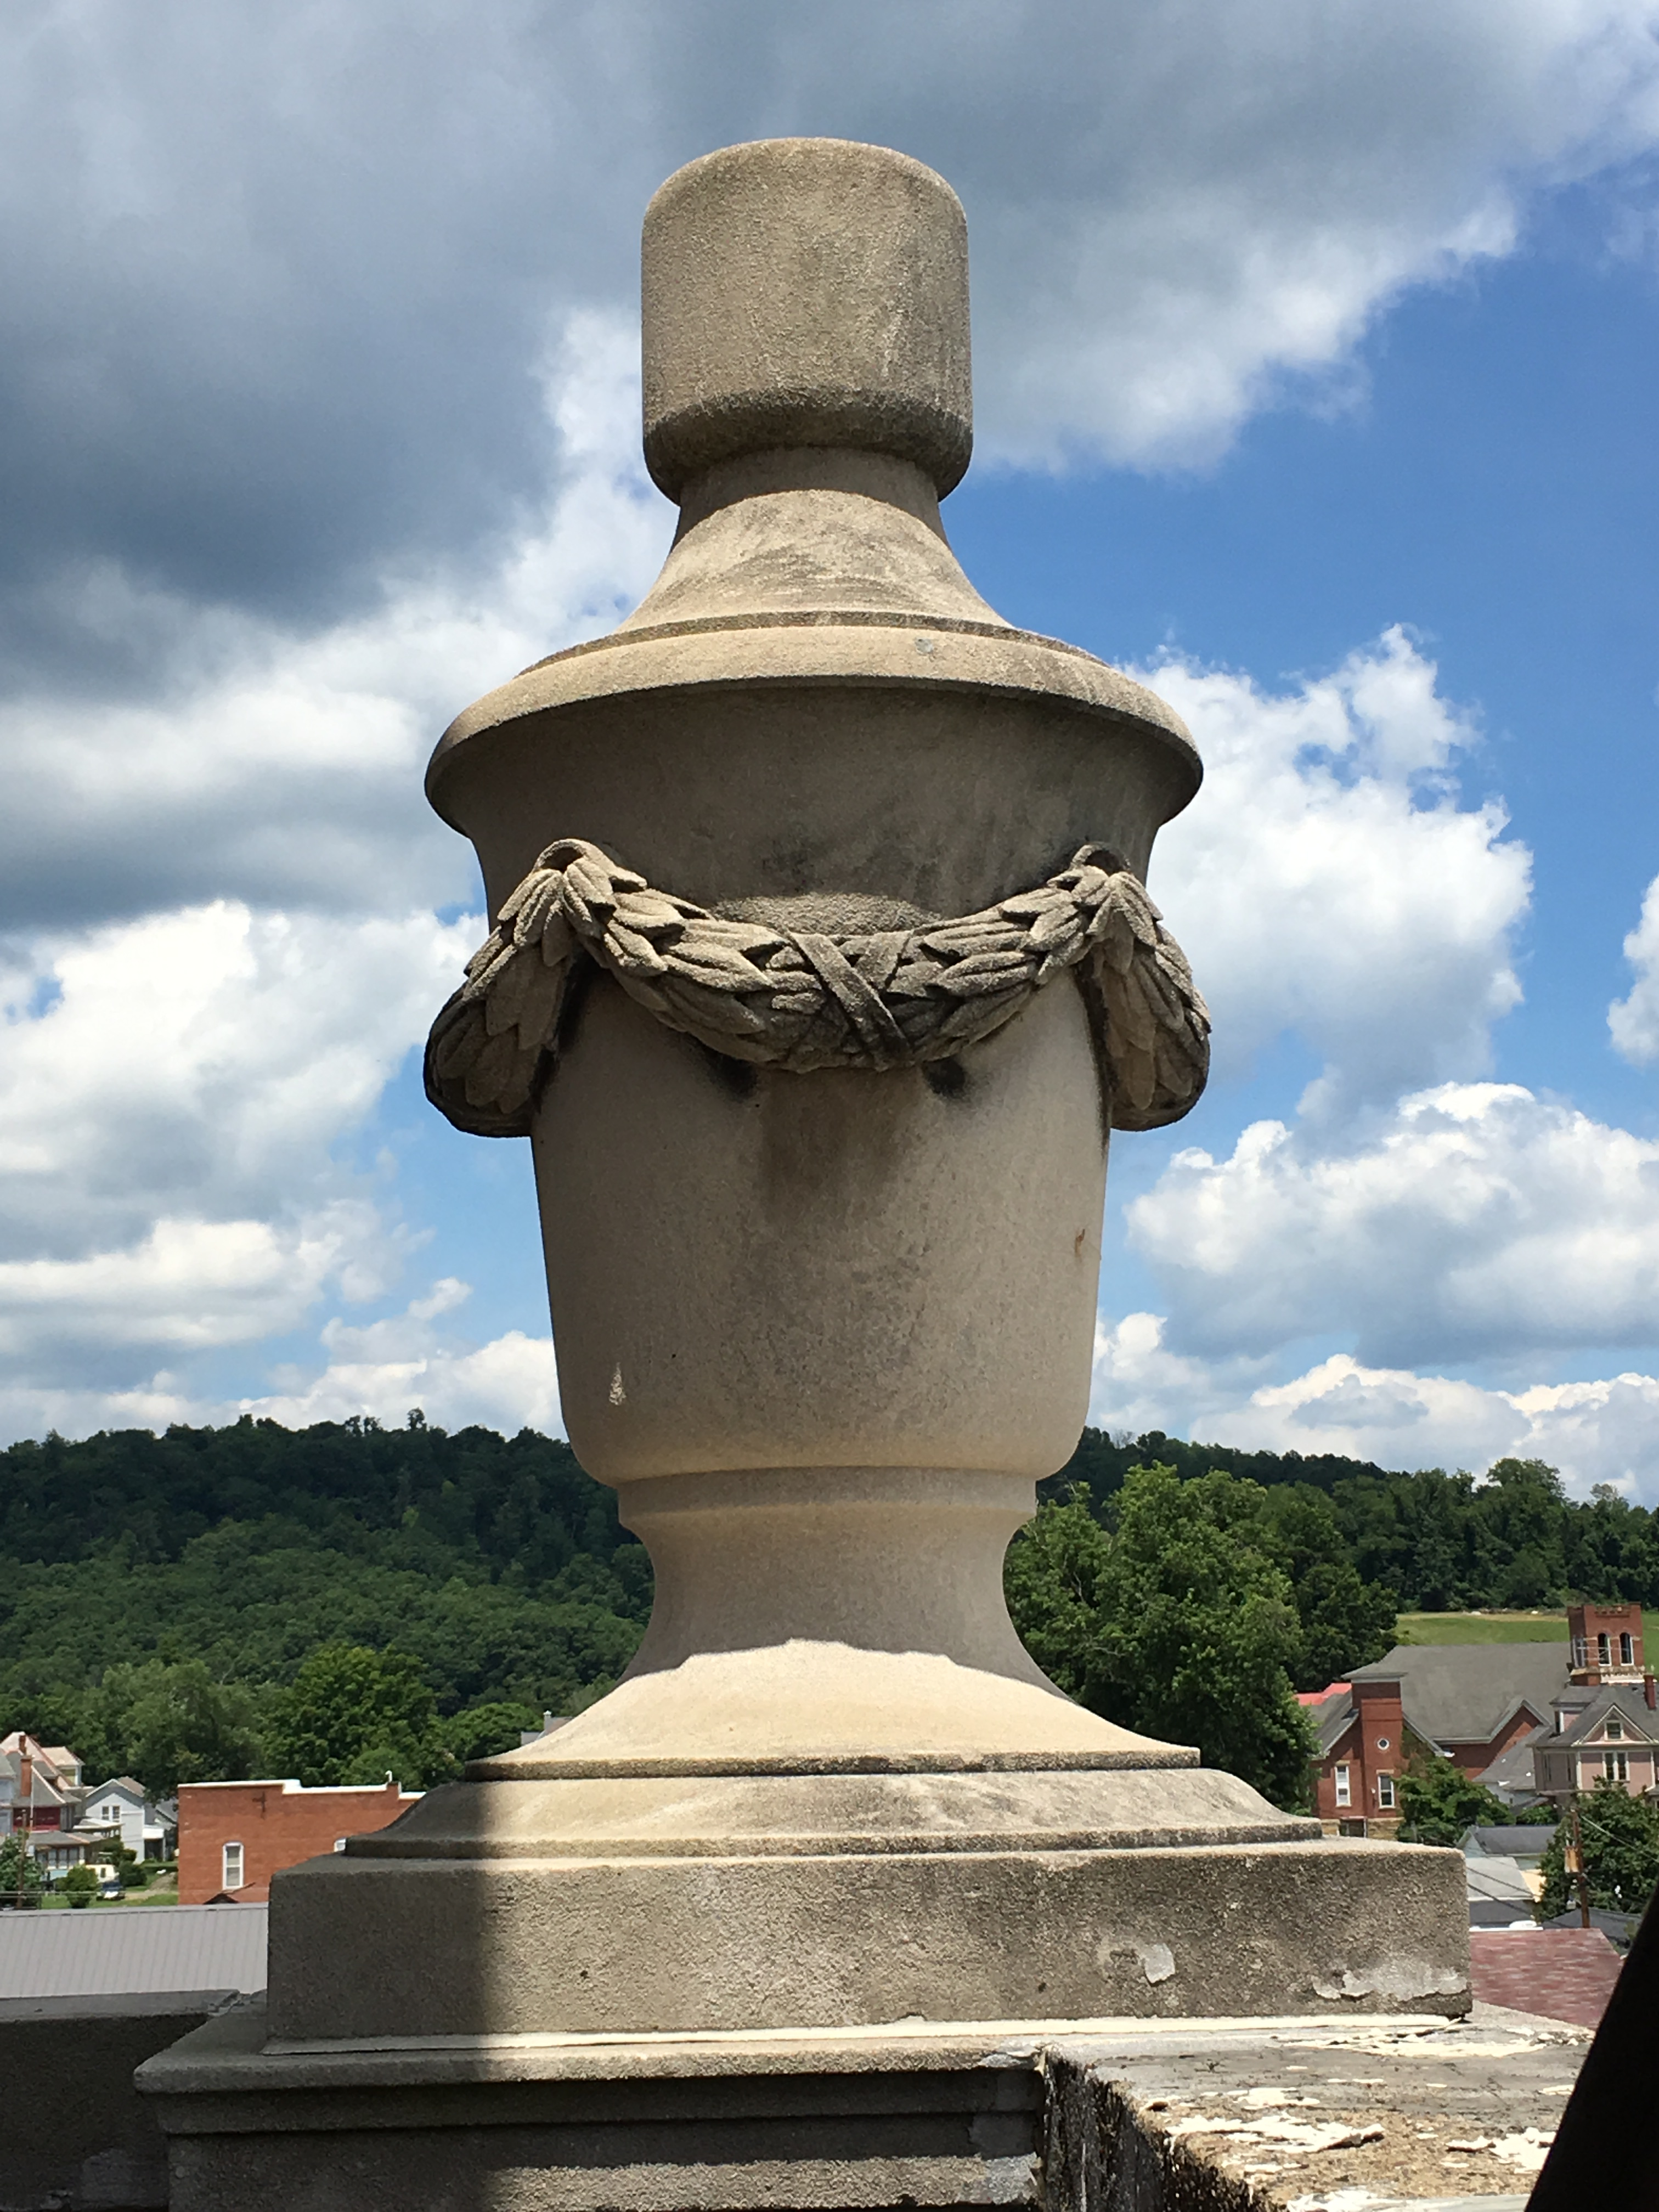 Four urns adorn the four-cornered ledge just below the bell tower. 